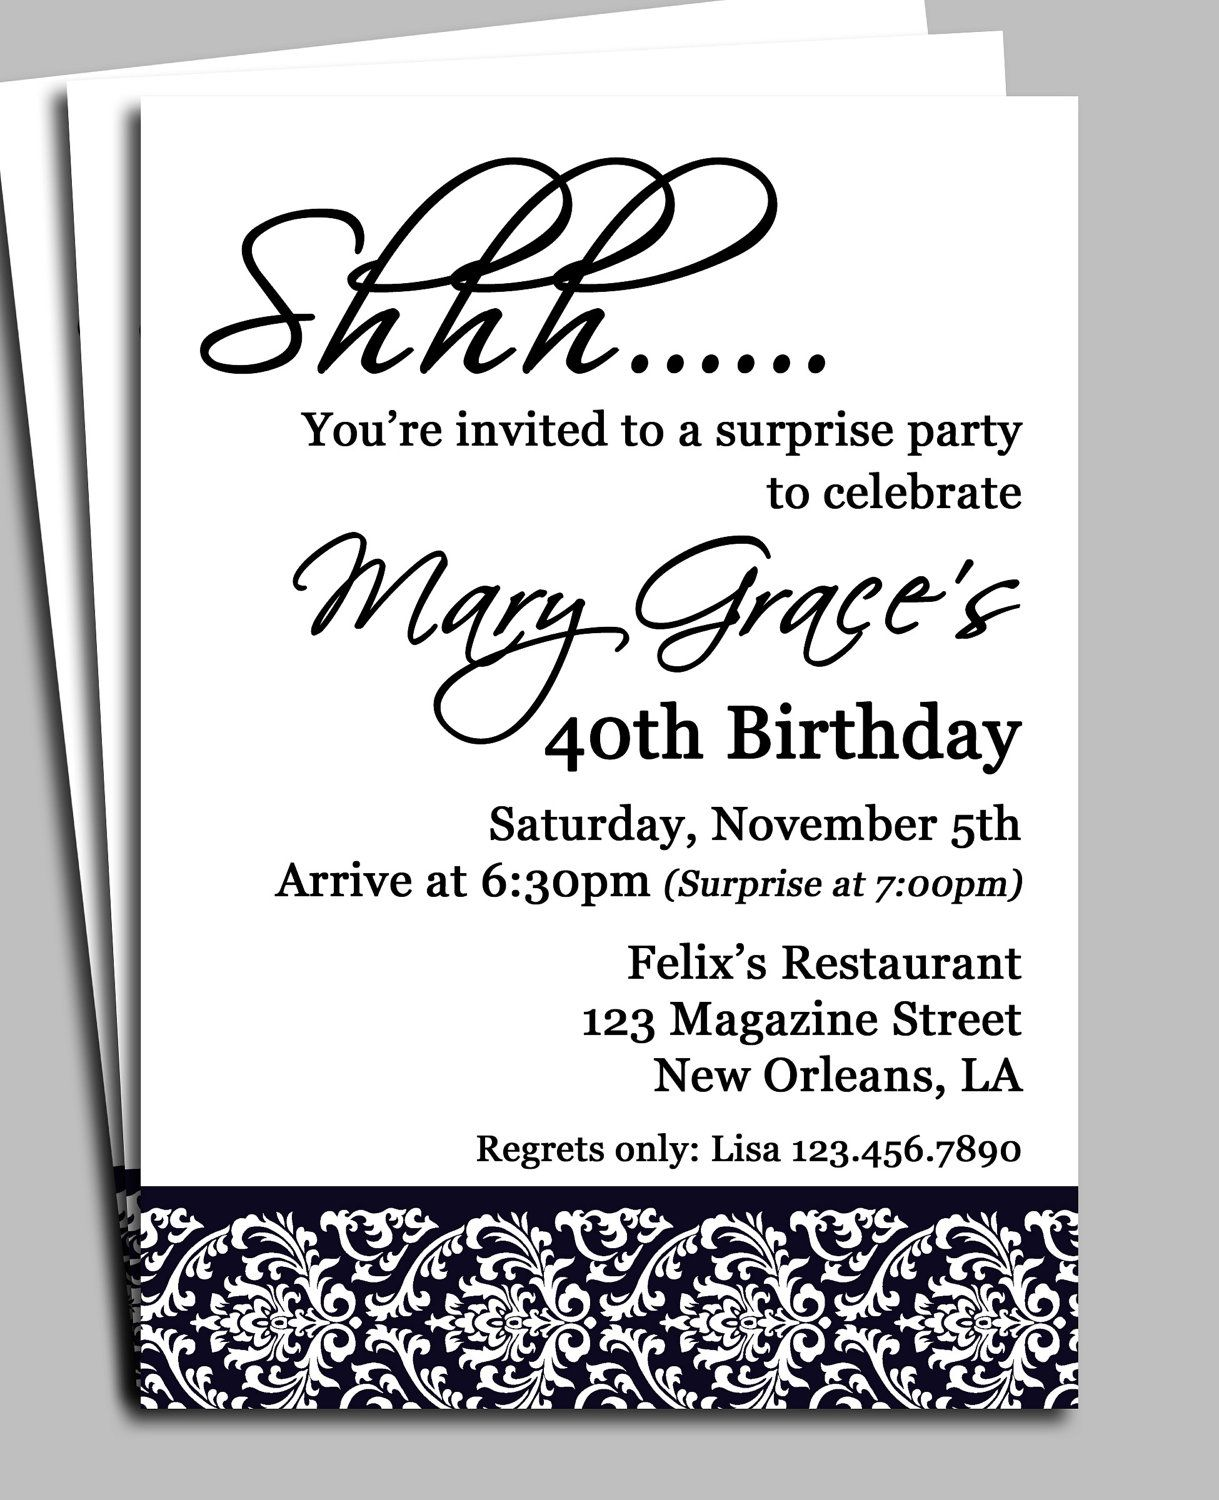 Invitation For Surprise Birthday Party Wording | H | Pinterest ...